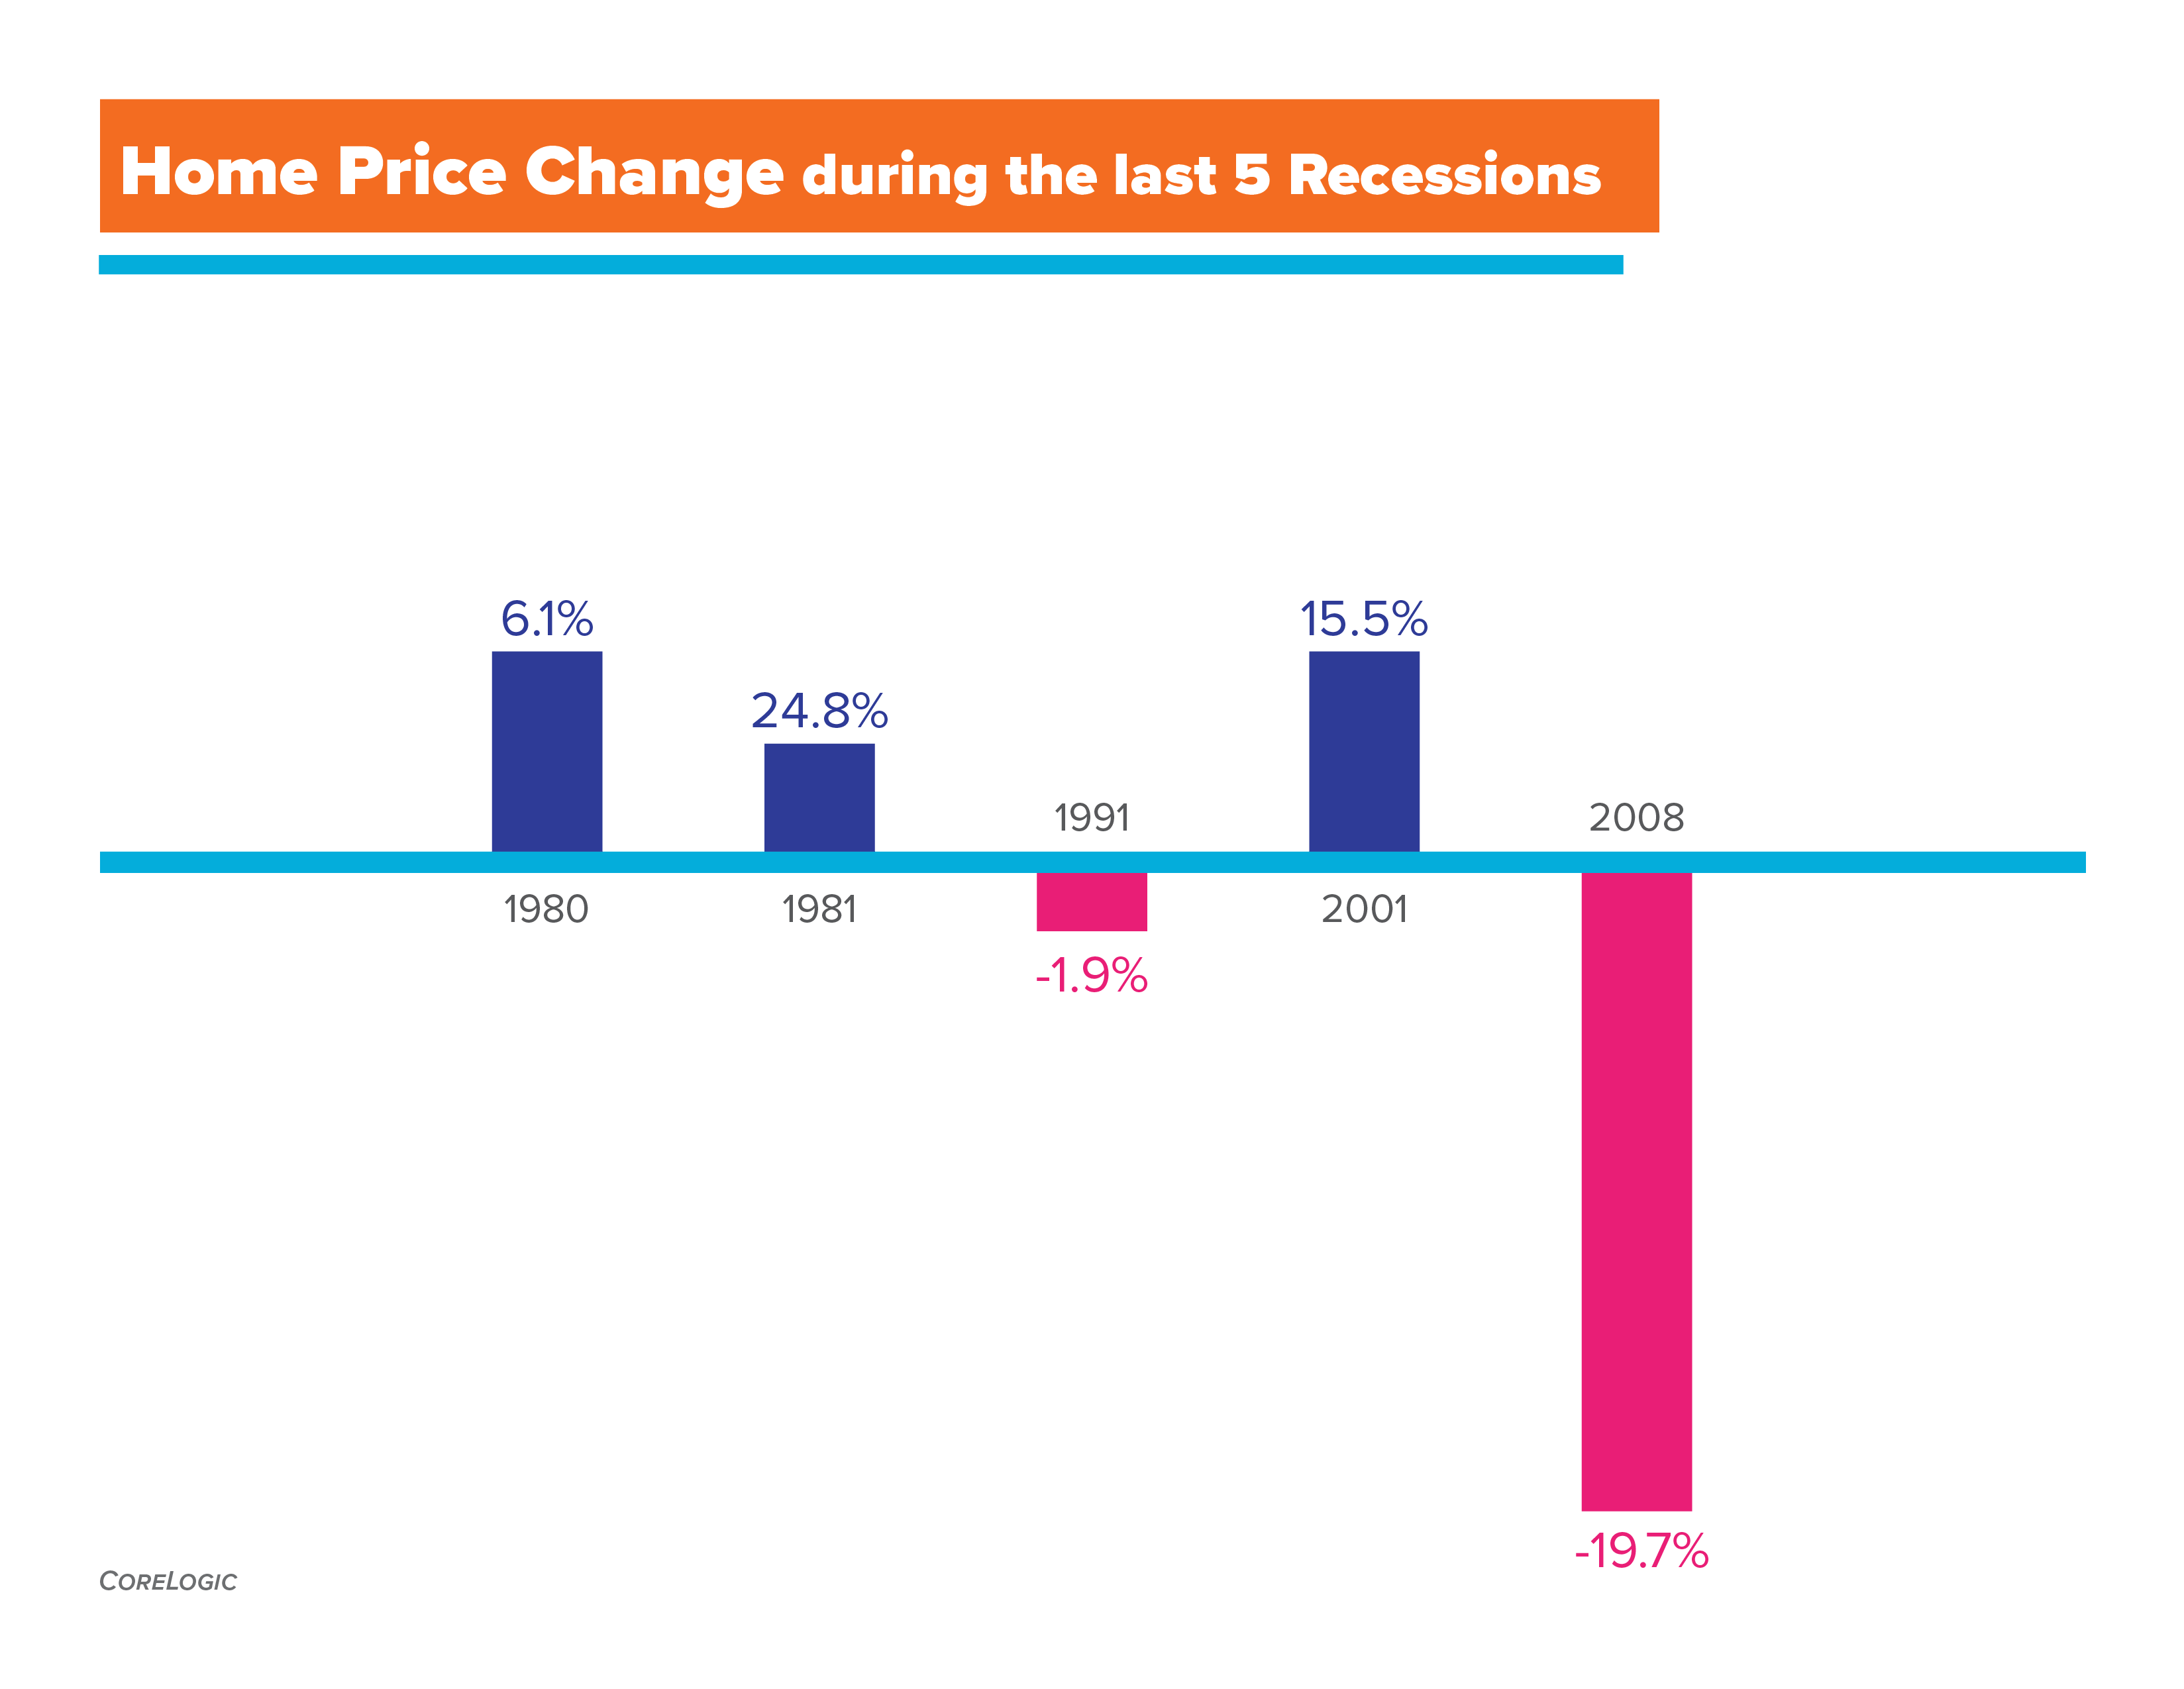 Home Price Change During The Last 5 Recessions